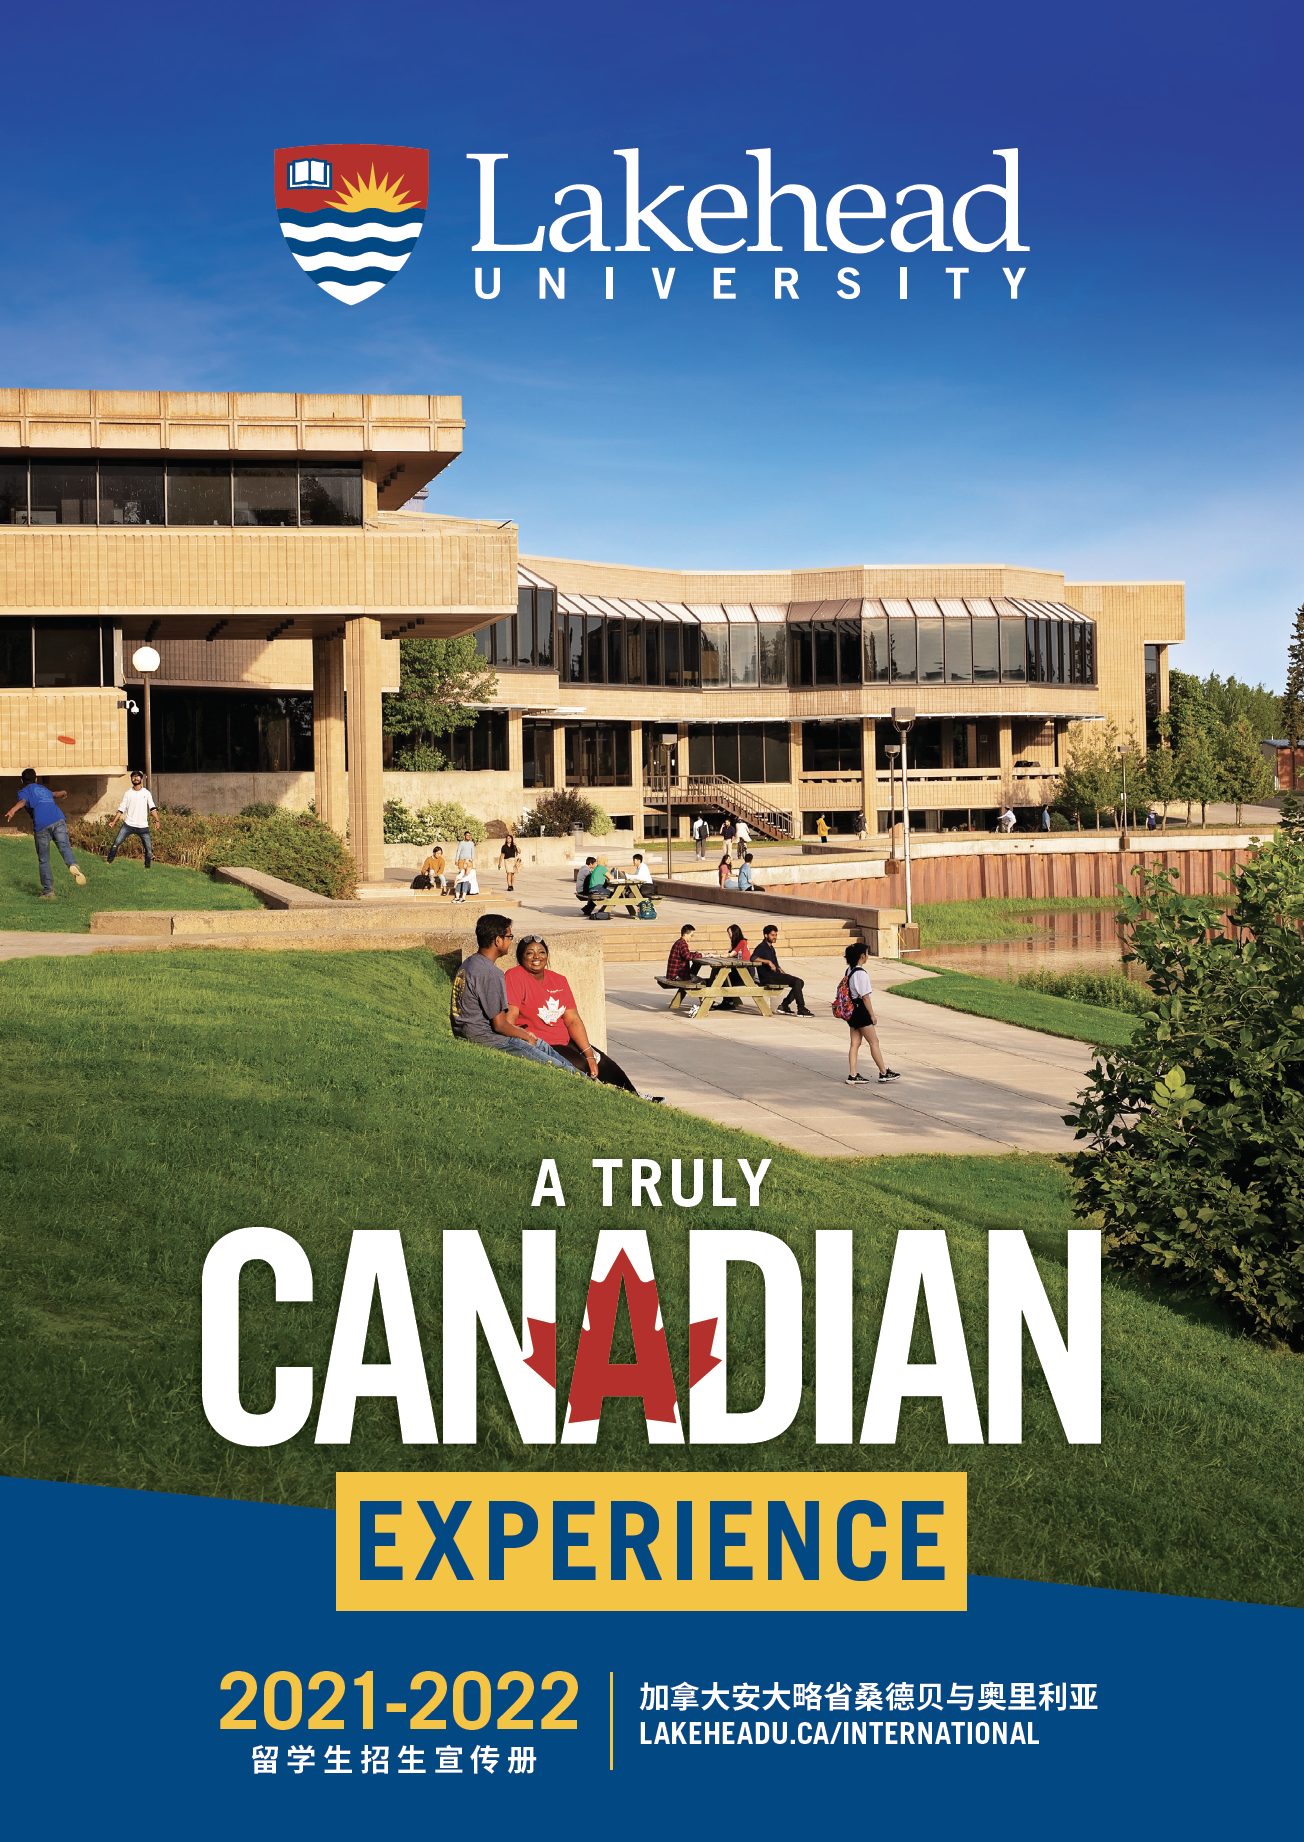 The cover of the 2021 Lakehead International viewbook in Mandarin.